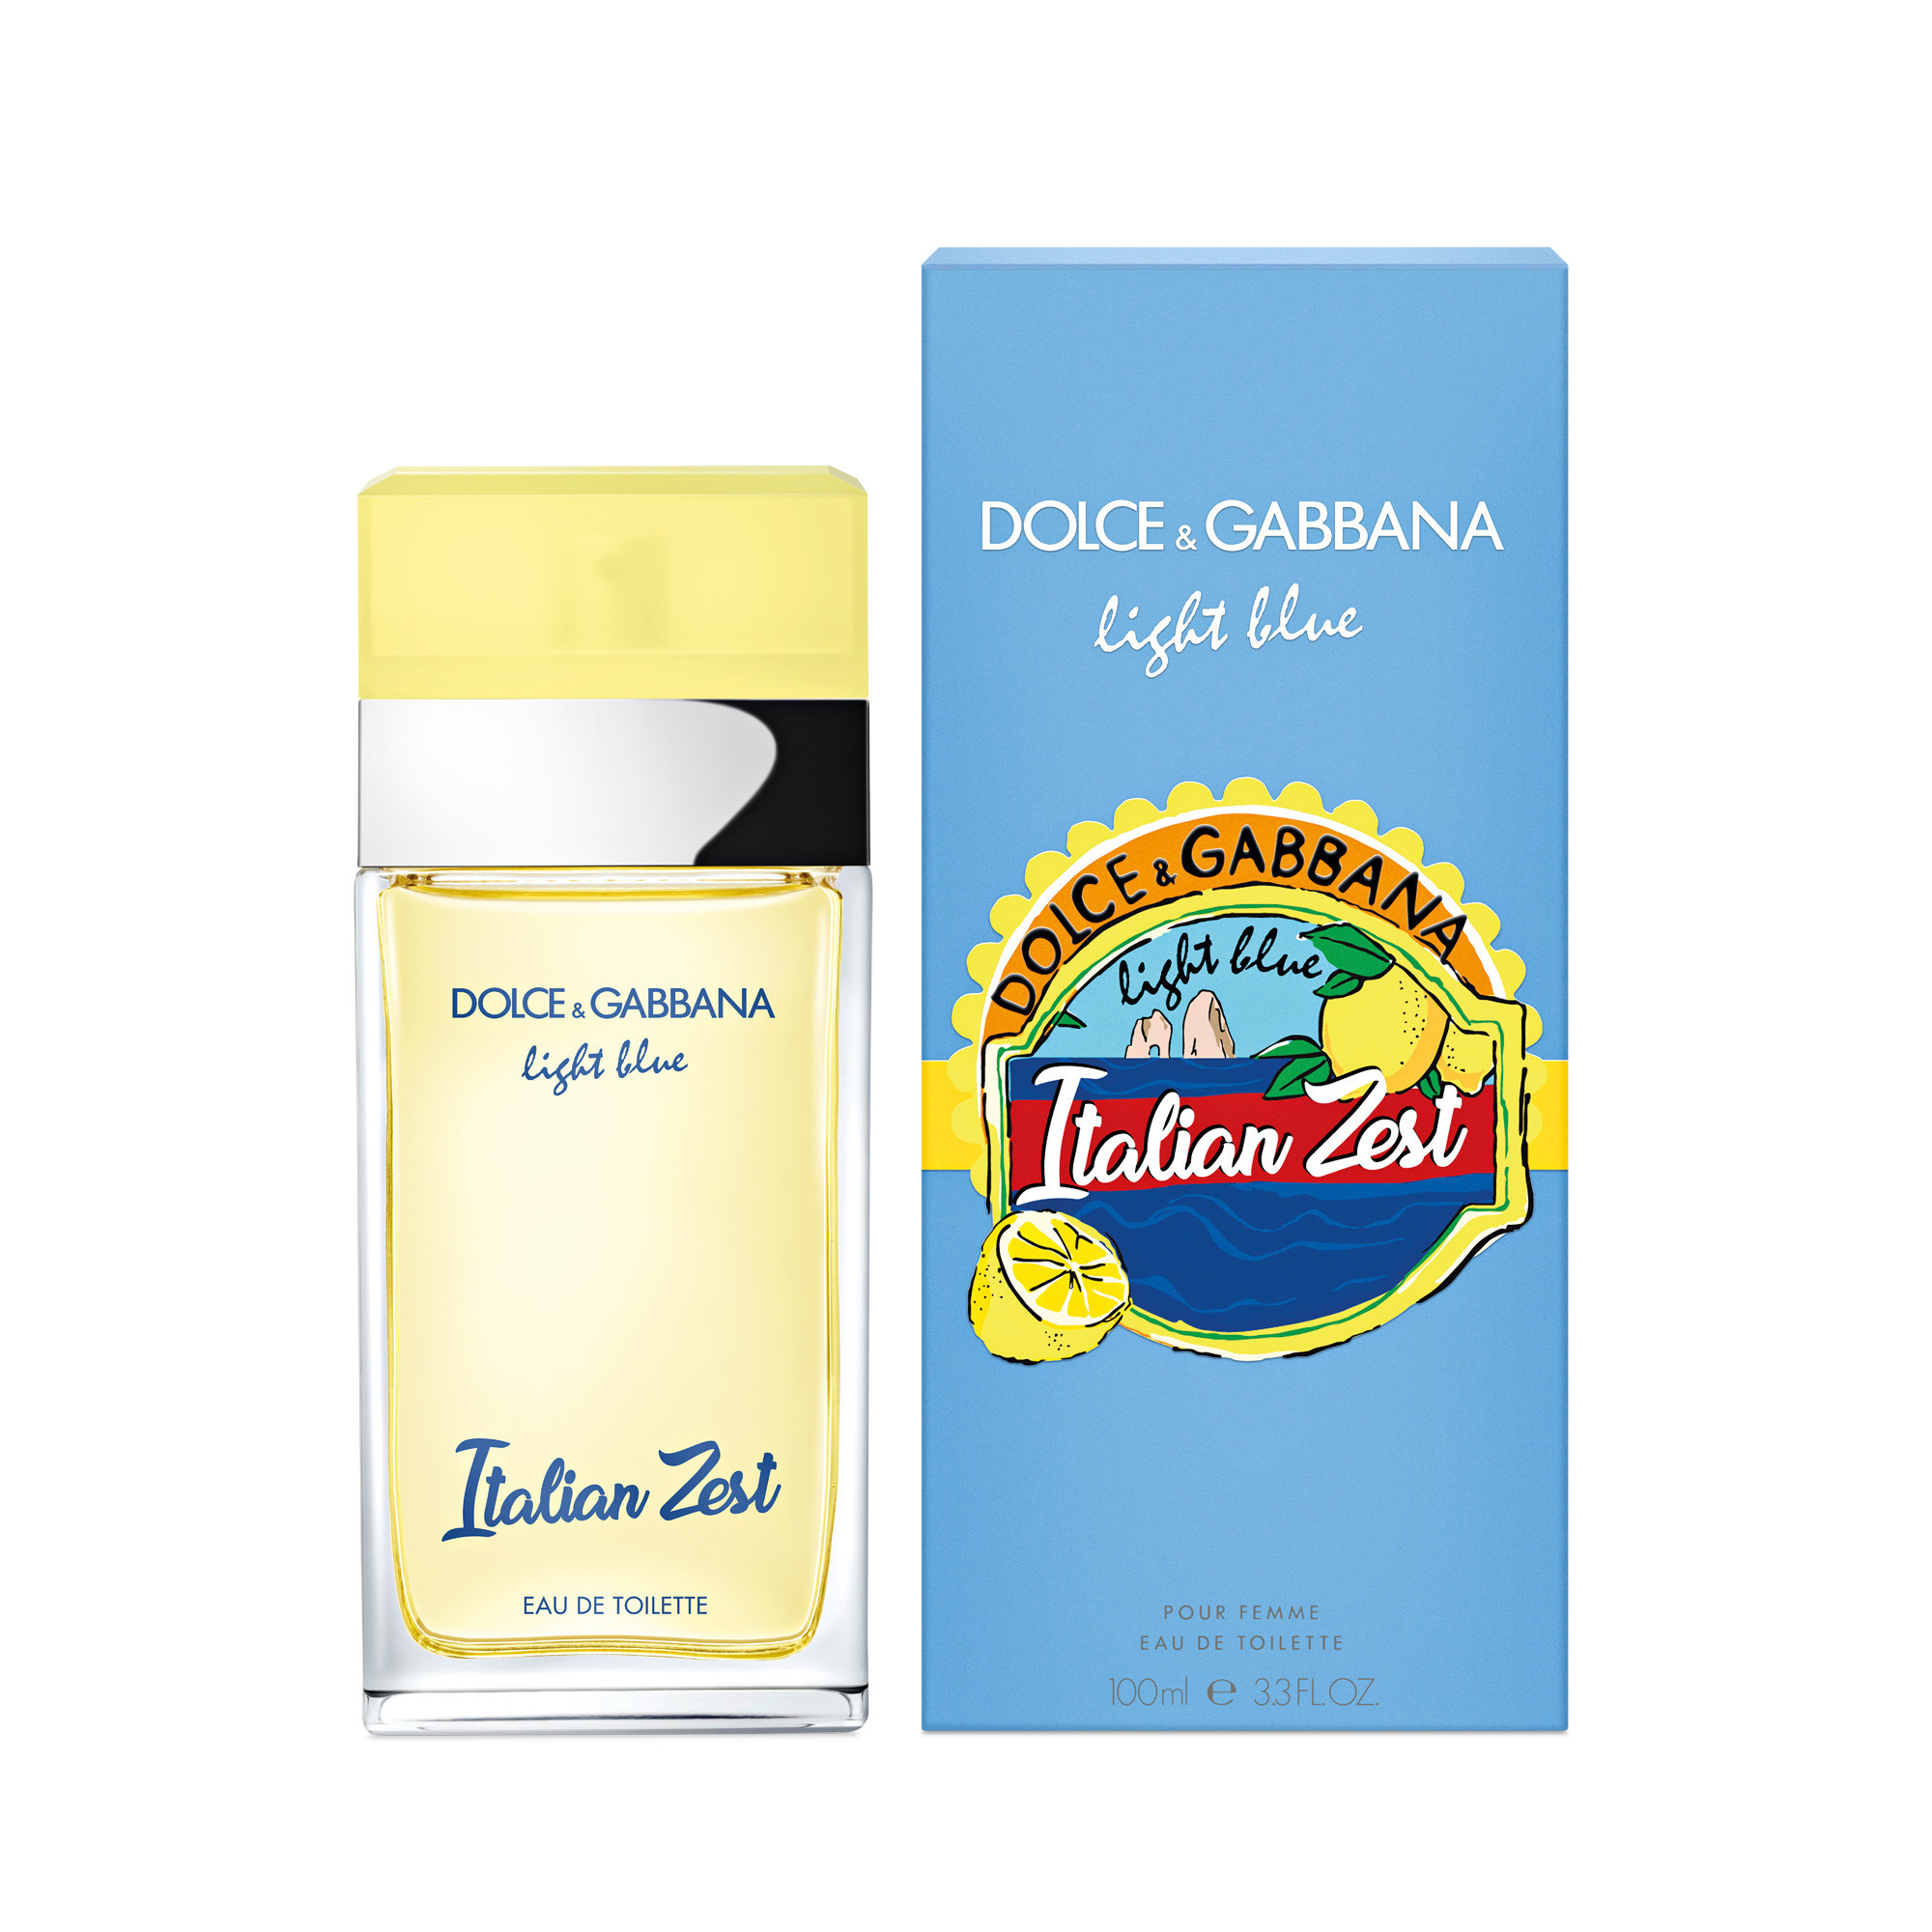 Dolce & Gabbana's Light Blue Italian Zest fragrance.